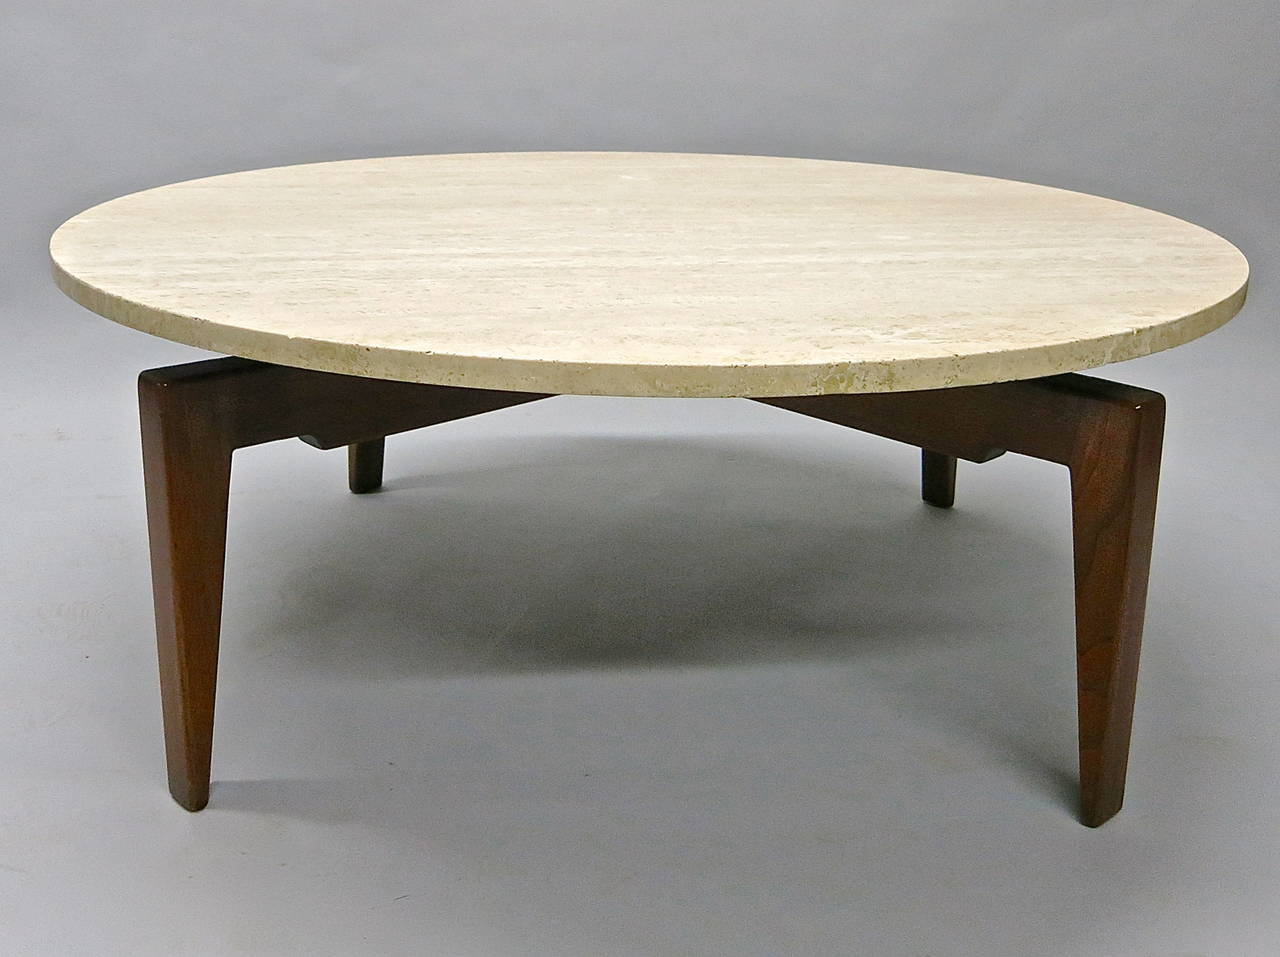 Rotating coffee table labeled jens risom design inc circa 1950 rotating coffee table labeled jens risom design inc circa 1950 american 3 geotapseo Image collections